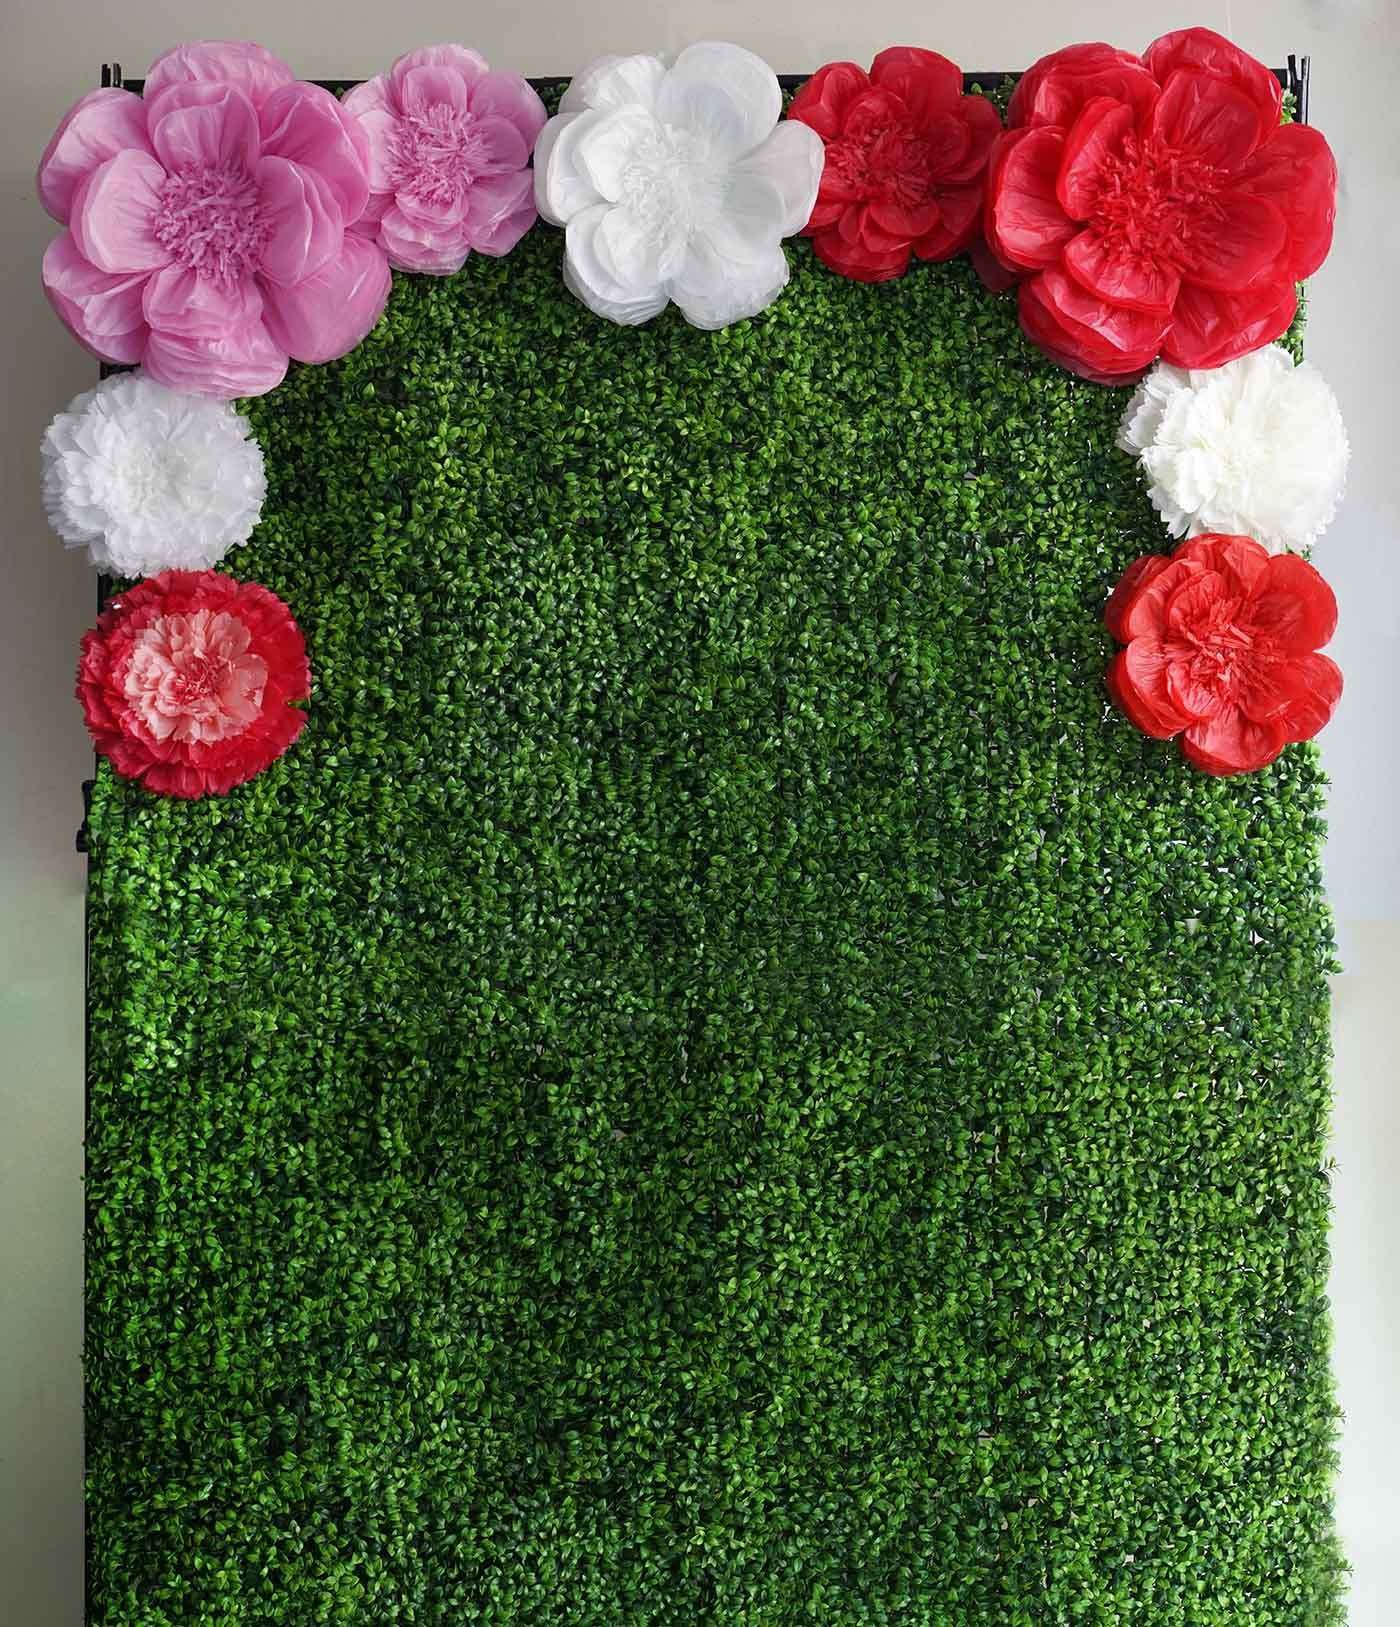 20 Pink Diy Giant Carnation Paper Flower Wall Backdrop Decor